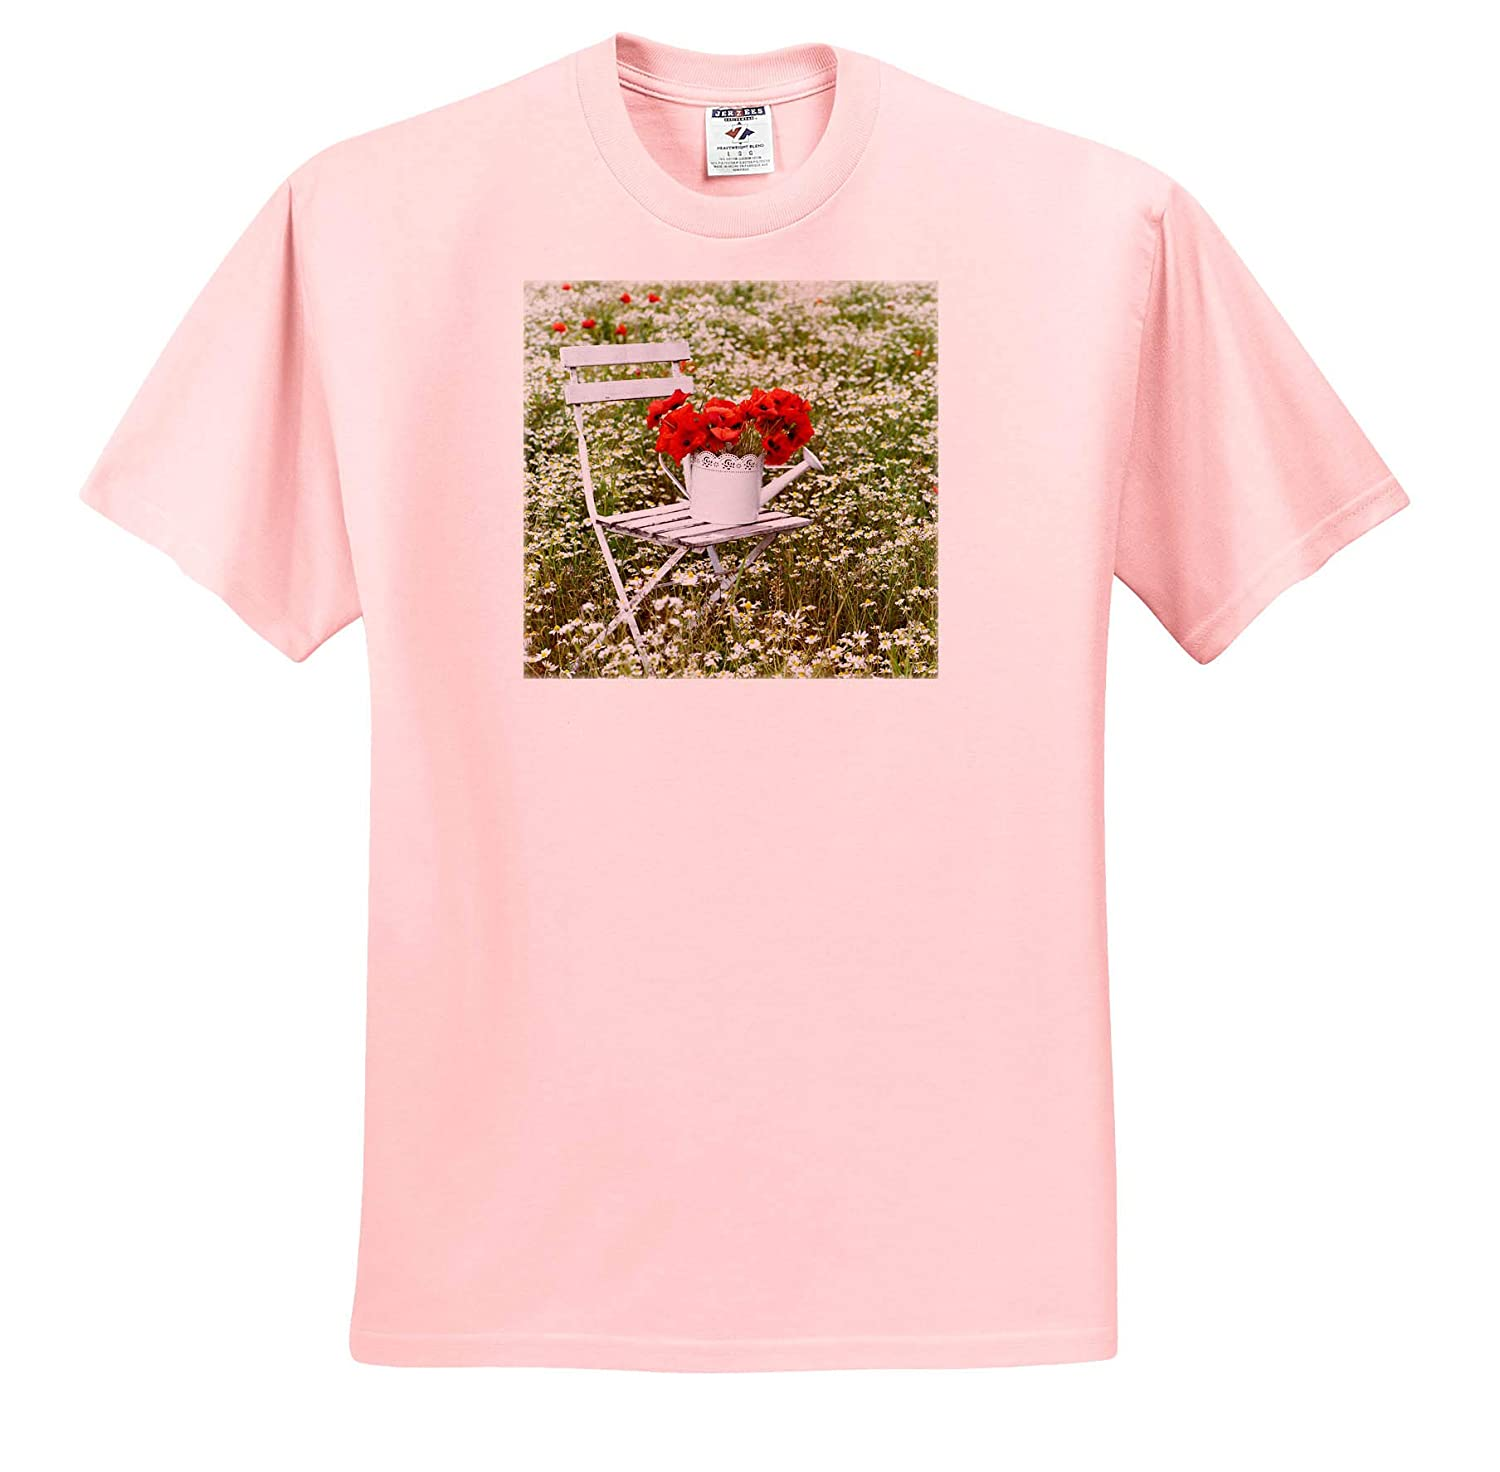 3dRose Uta Naumann Photography Stilllife Poppy Flowers On White Chair in A White Can in A Field of Daisies T-Shirts